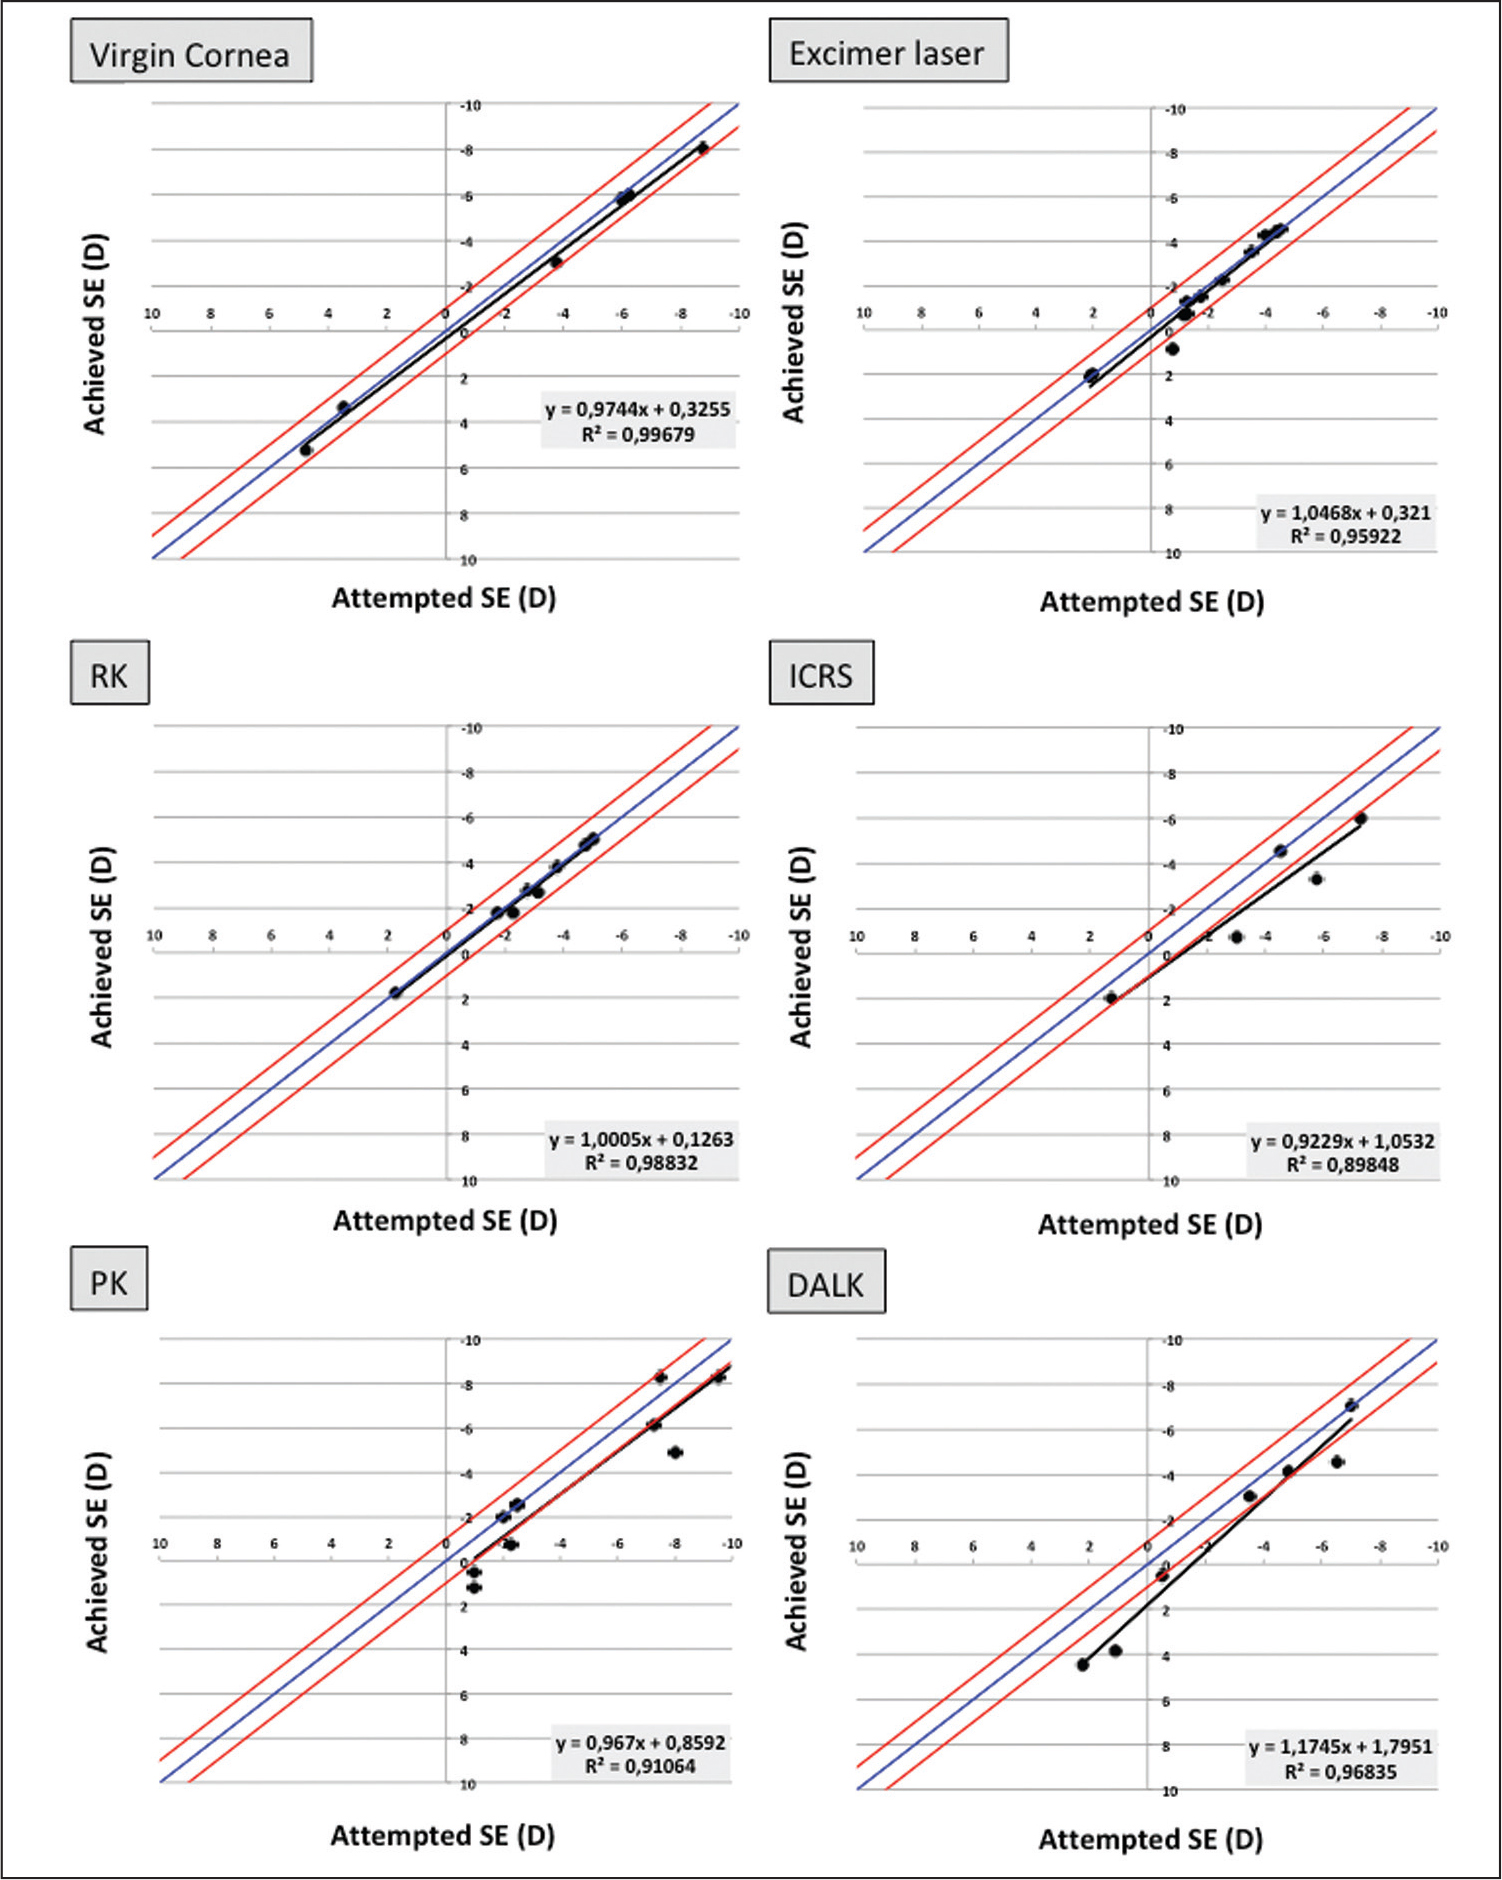 Attempted versus achieved spherical equivalent (SE) for the virgin cornea, excimer laser, radial keratotomy (RK), intrastromal corneal ring segments (ICRS), penetrating keratoplasty (PK), and deep anterior lamellar keratoplasty (DALK) groups. D = diopters